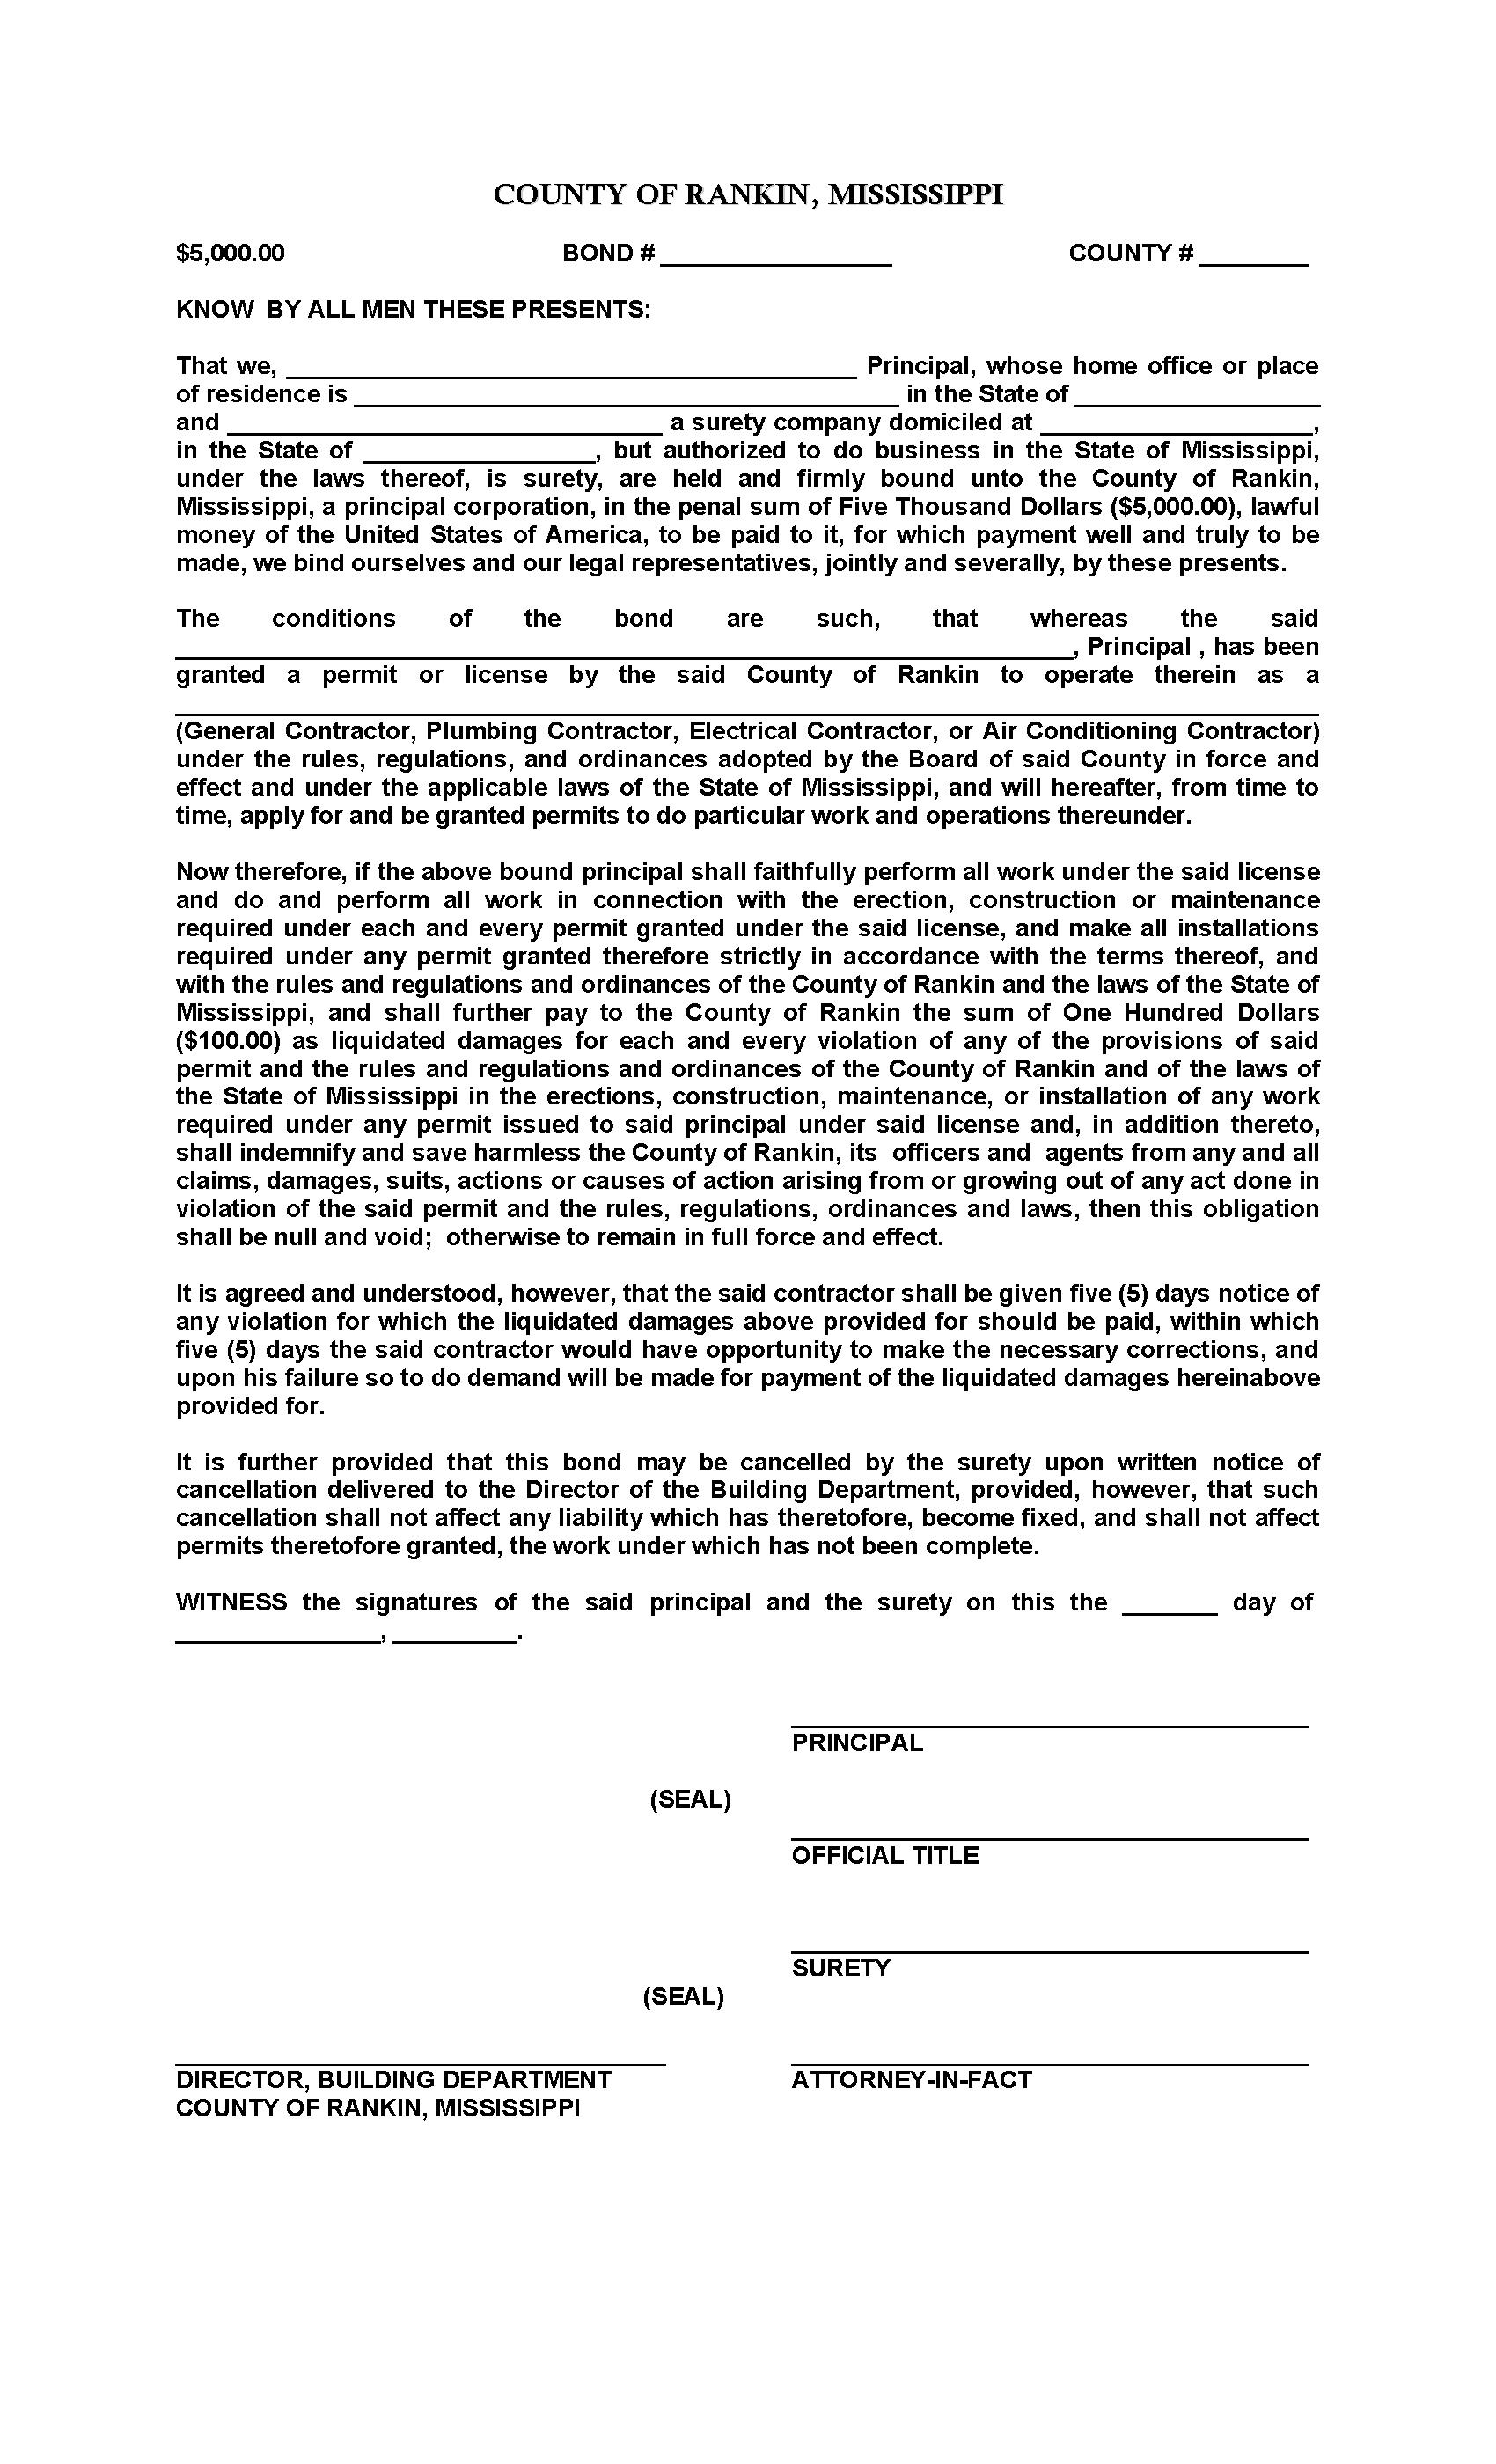 County of Rankin Contractor's License sample image